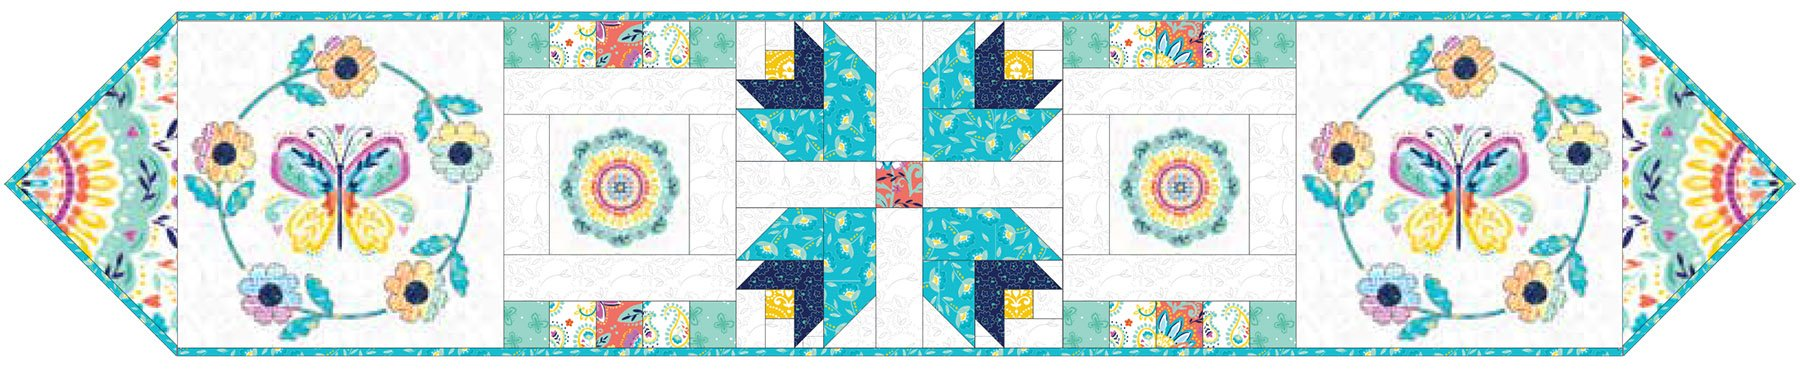 3 Wishes Fabric<br>Summer Song Table Runner